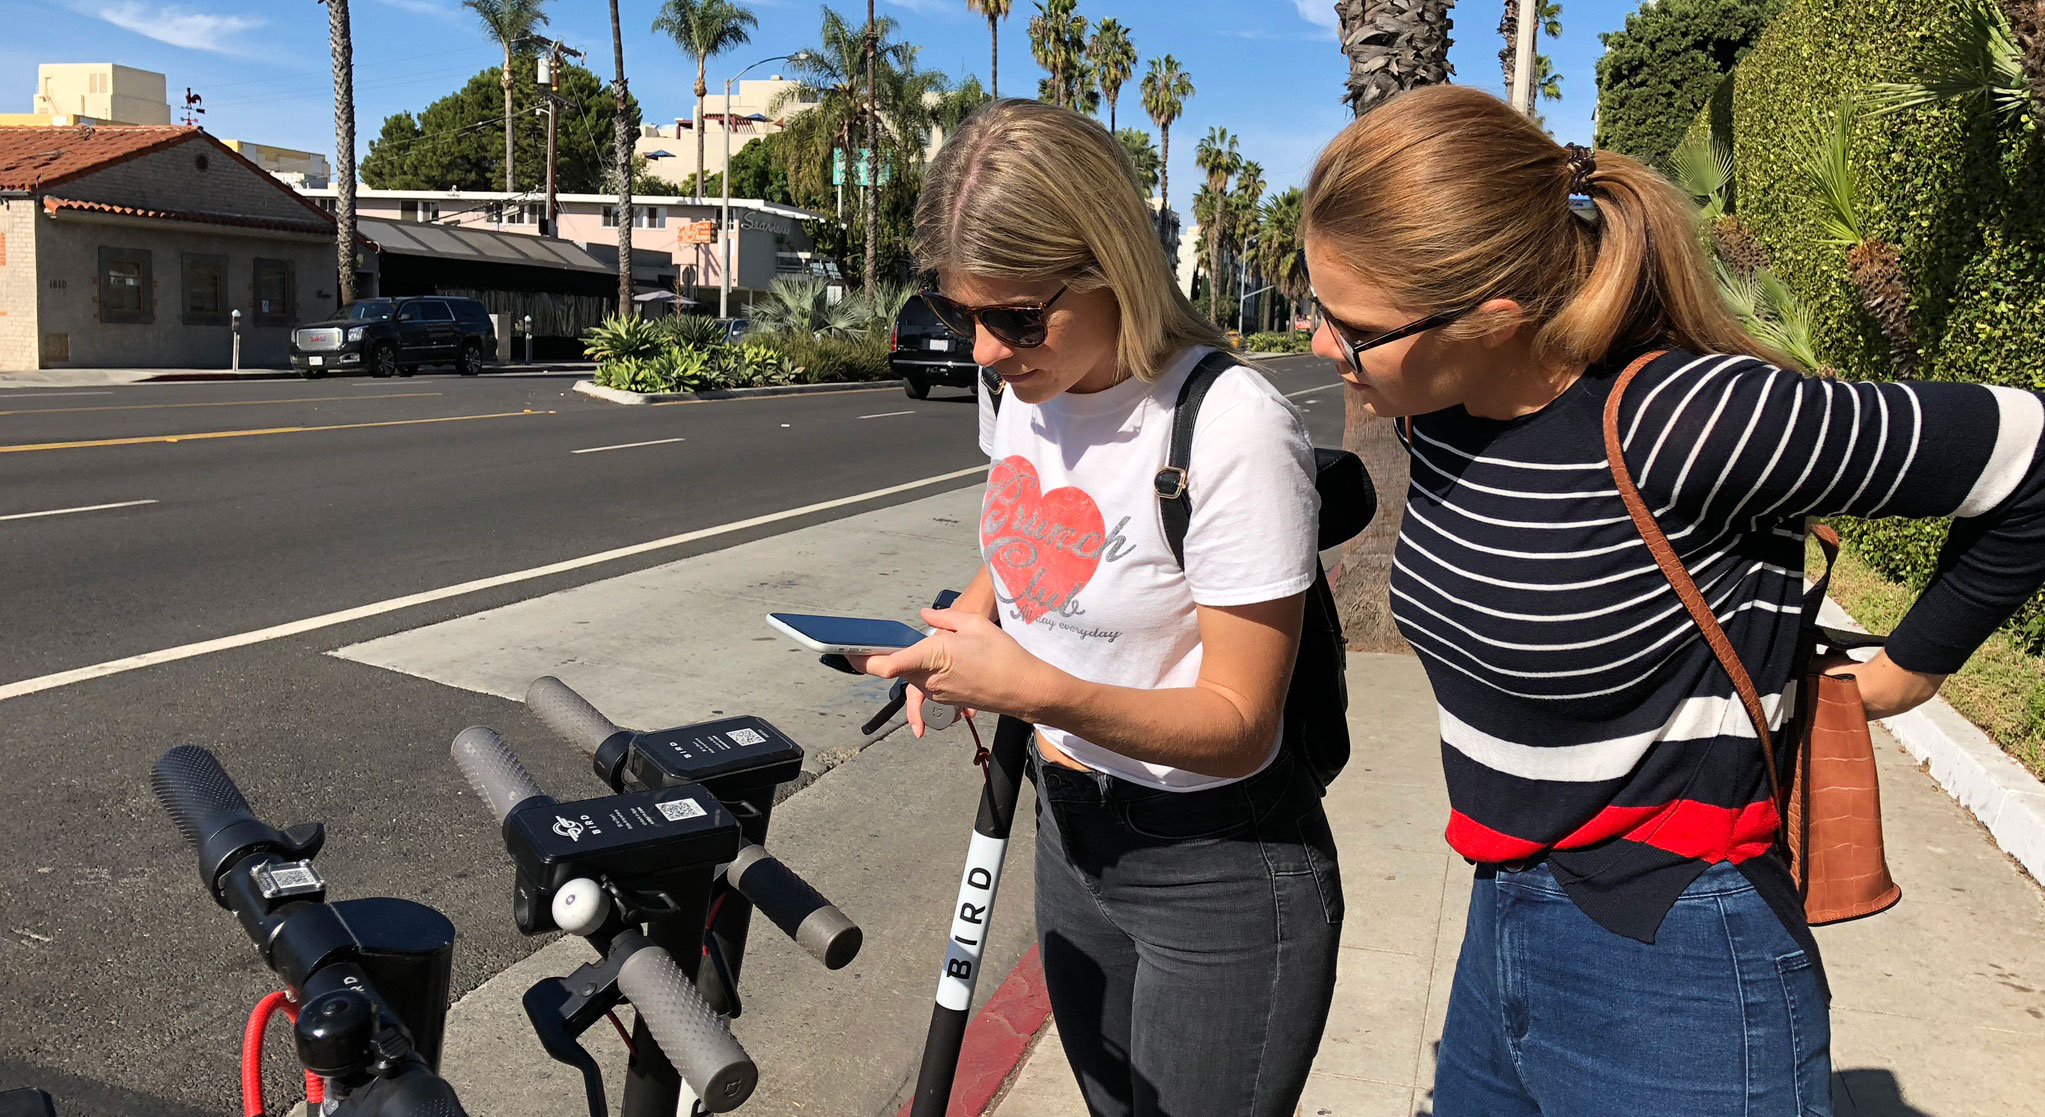 Downloading apps for e-scooter hire will save you time when you arrive